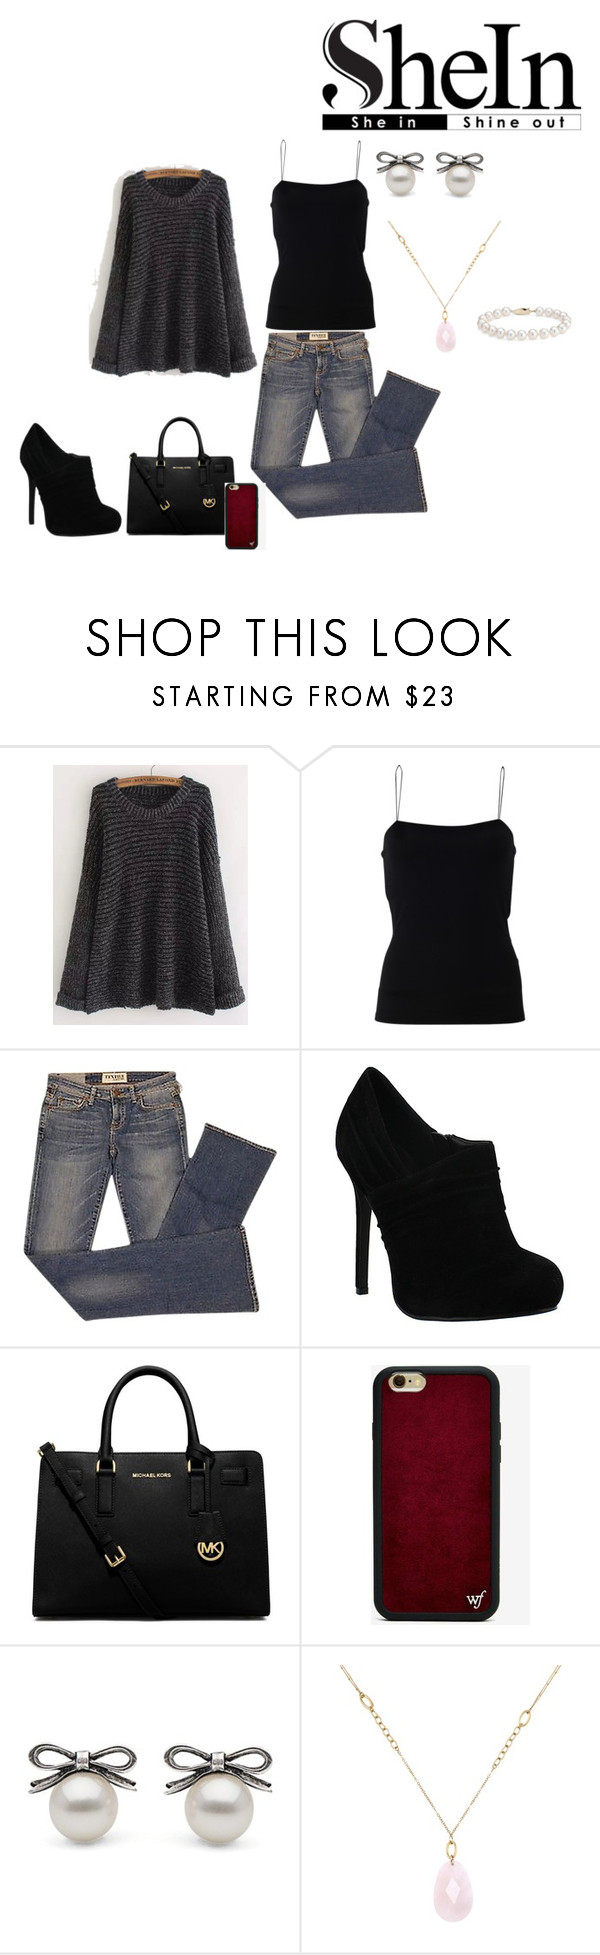 """""""Untitled #117"""" by diamondeswagg on Polyvore featuring T By Alexander Wang, Elizabeth and James, MICHAEL Michael Kors, Wildflower, White House Black Market and Blue Nile"""